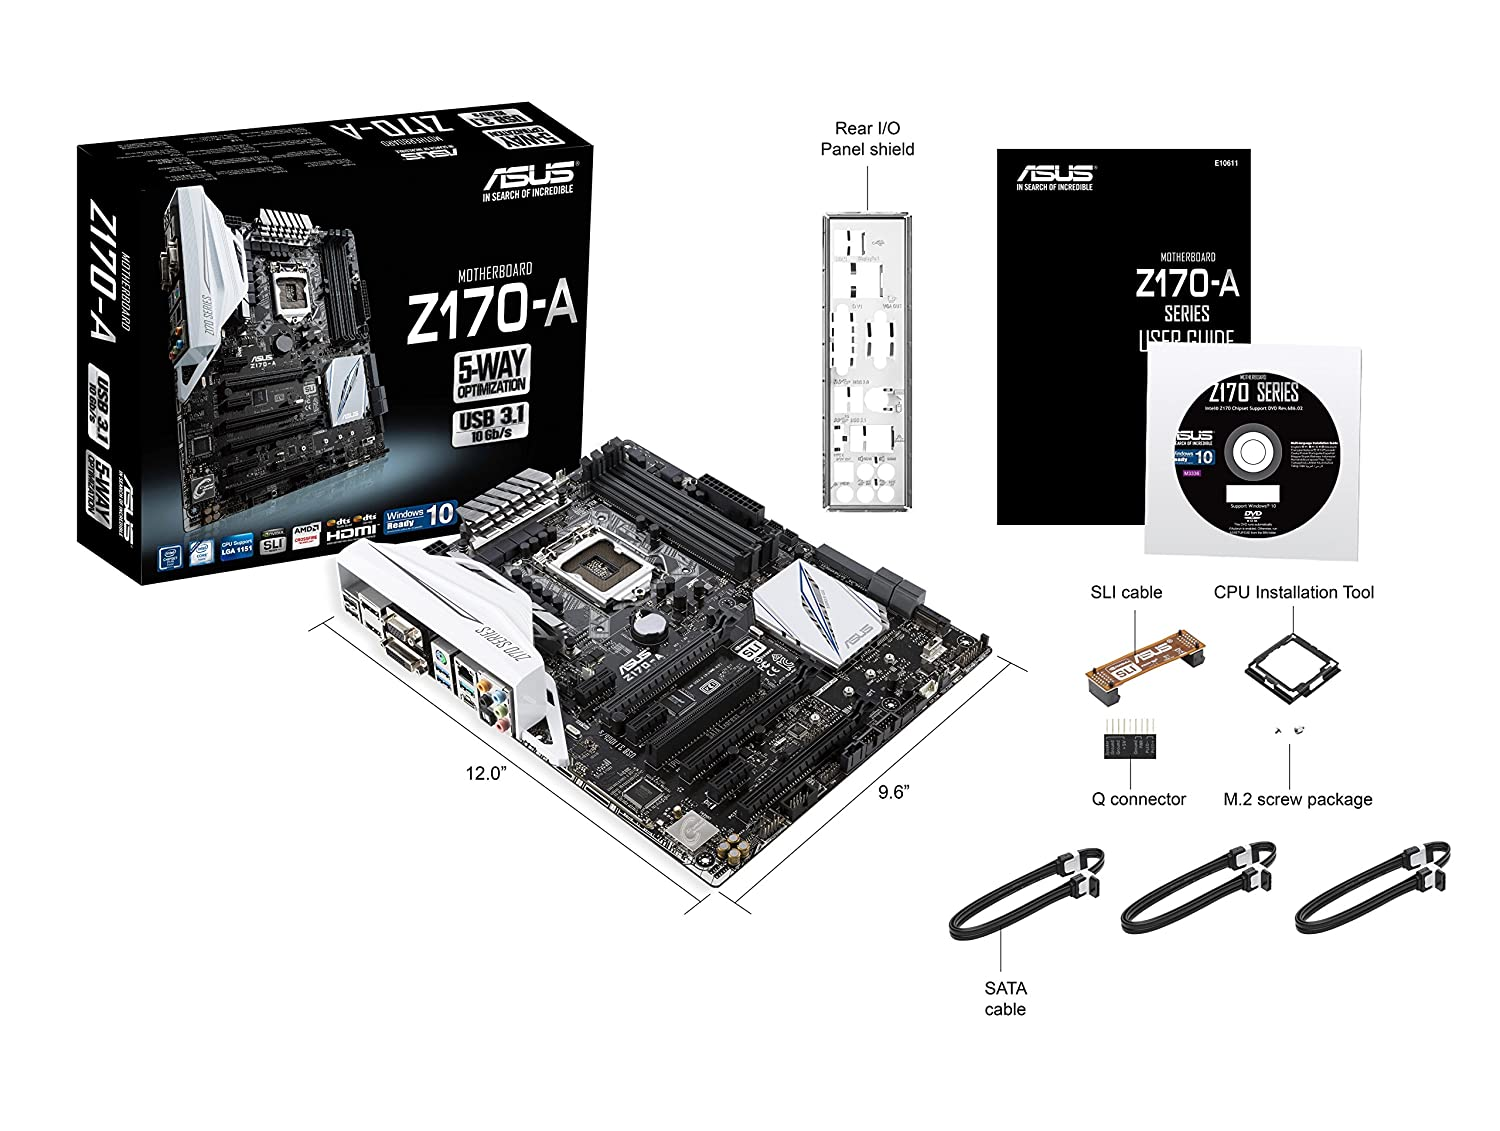 Top 3 motherboards for multiple monitor computers - August 2019